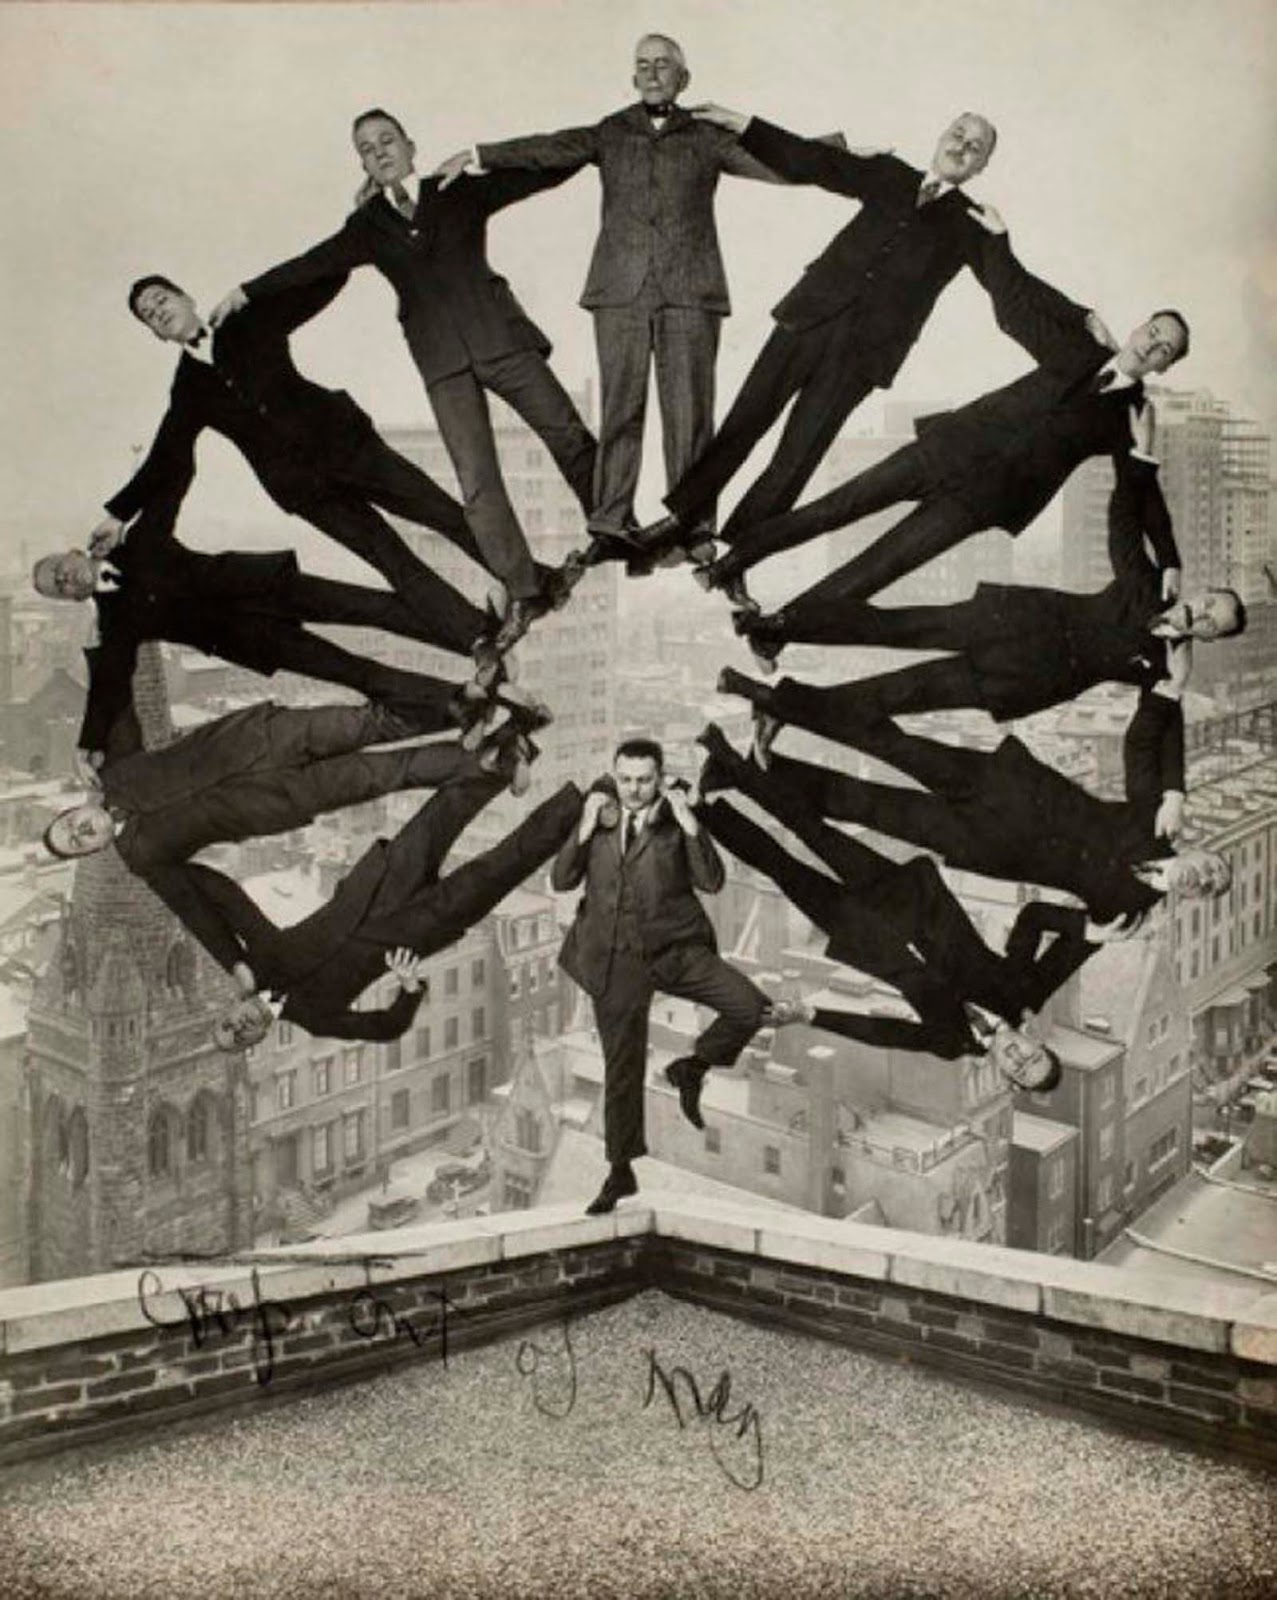 Man on rooftop with 11 men in formation on his shoulders. 1930.